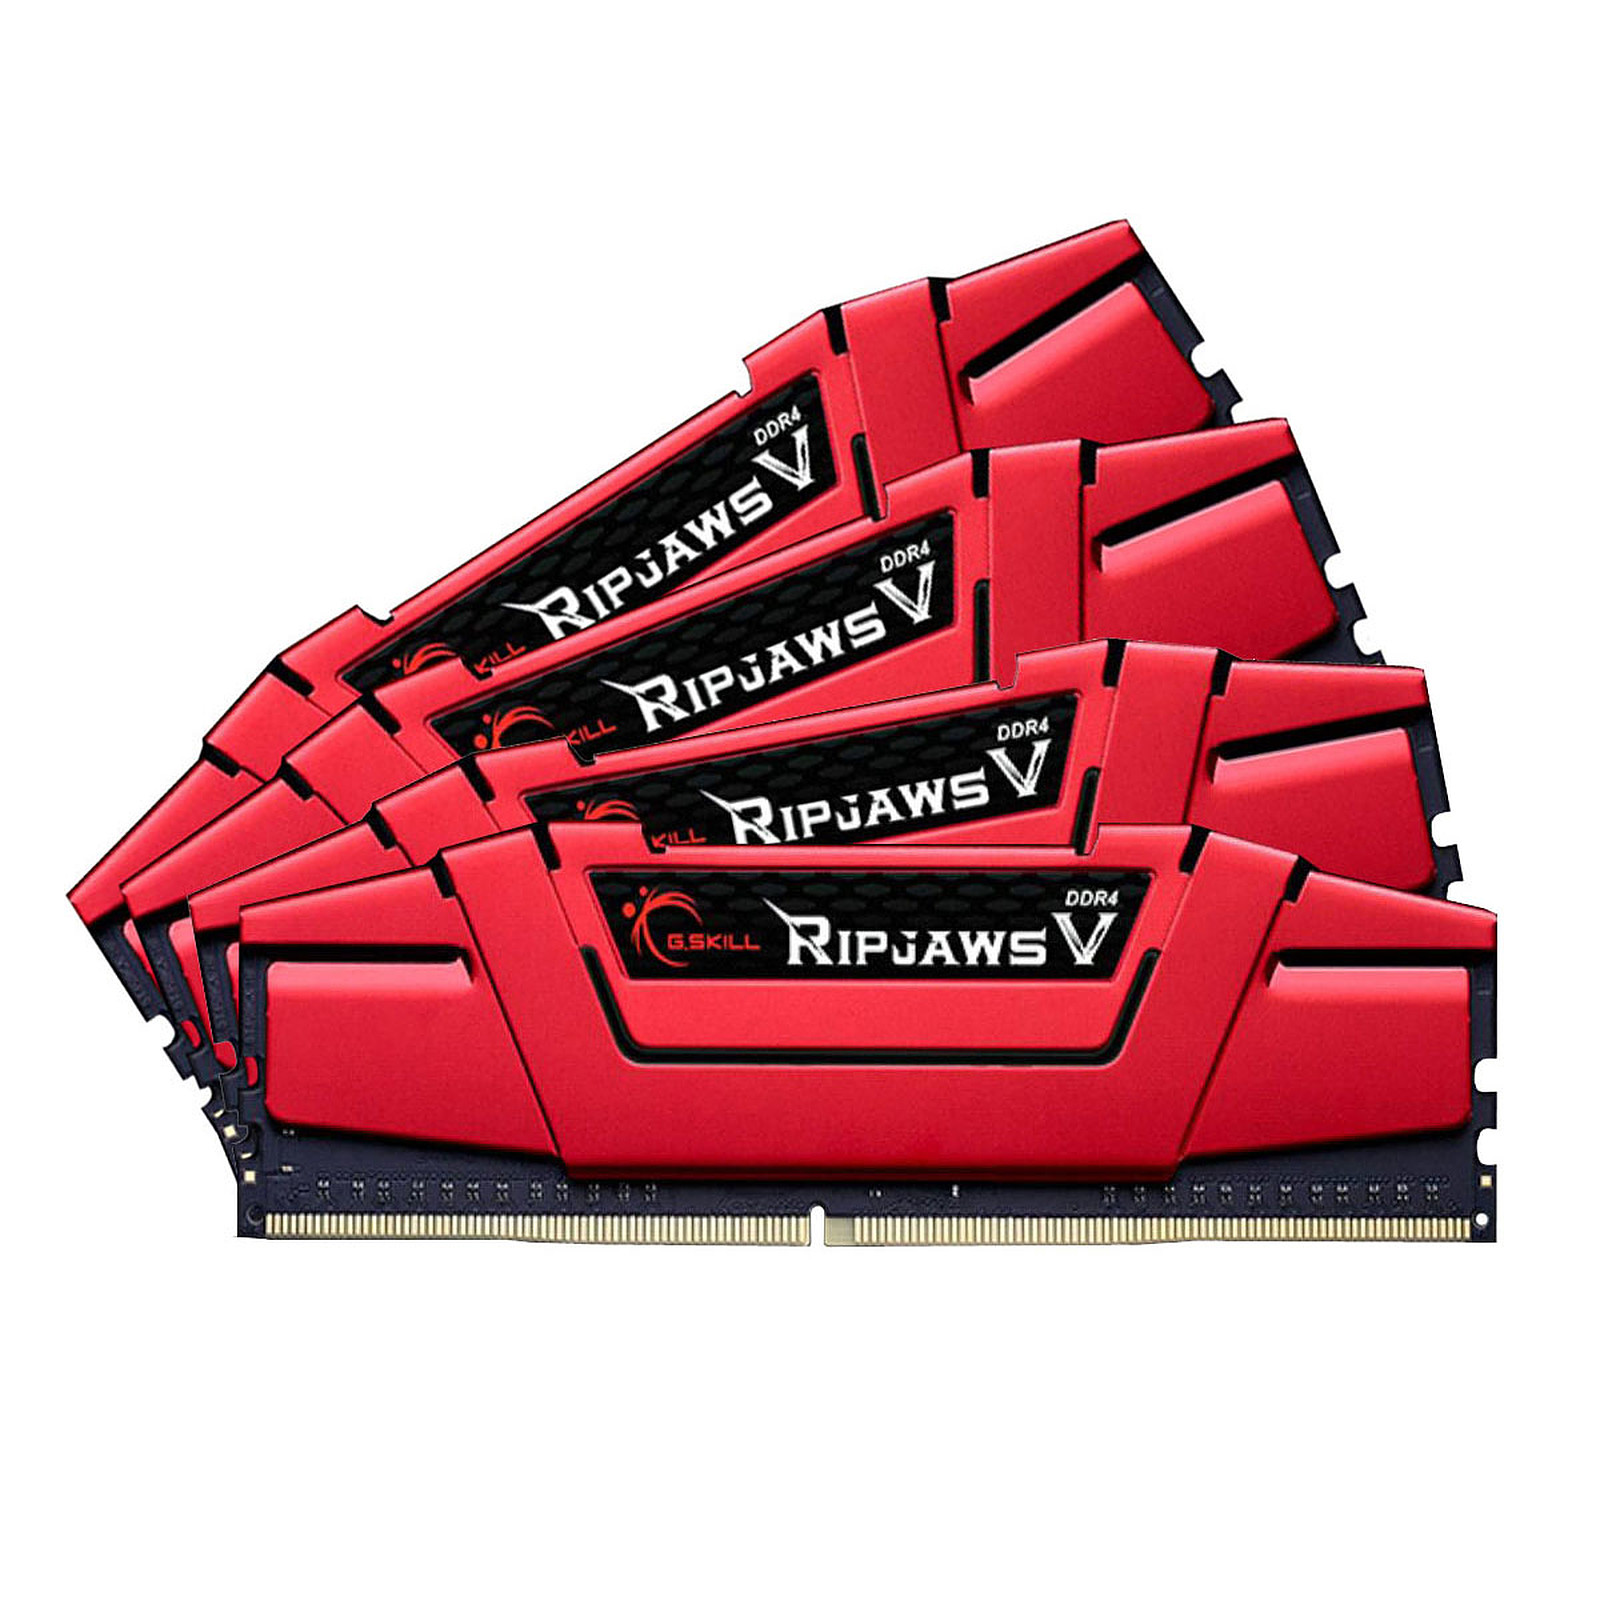 G.Skill RipJaws 5 Series Rouge 32 Go (4x8 Go) DDR4 2666 MHz CL19